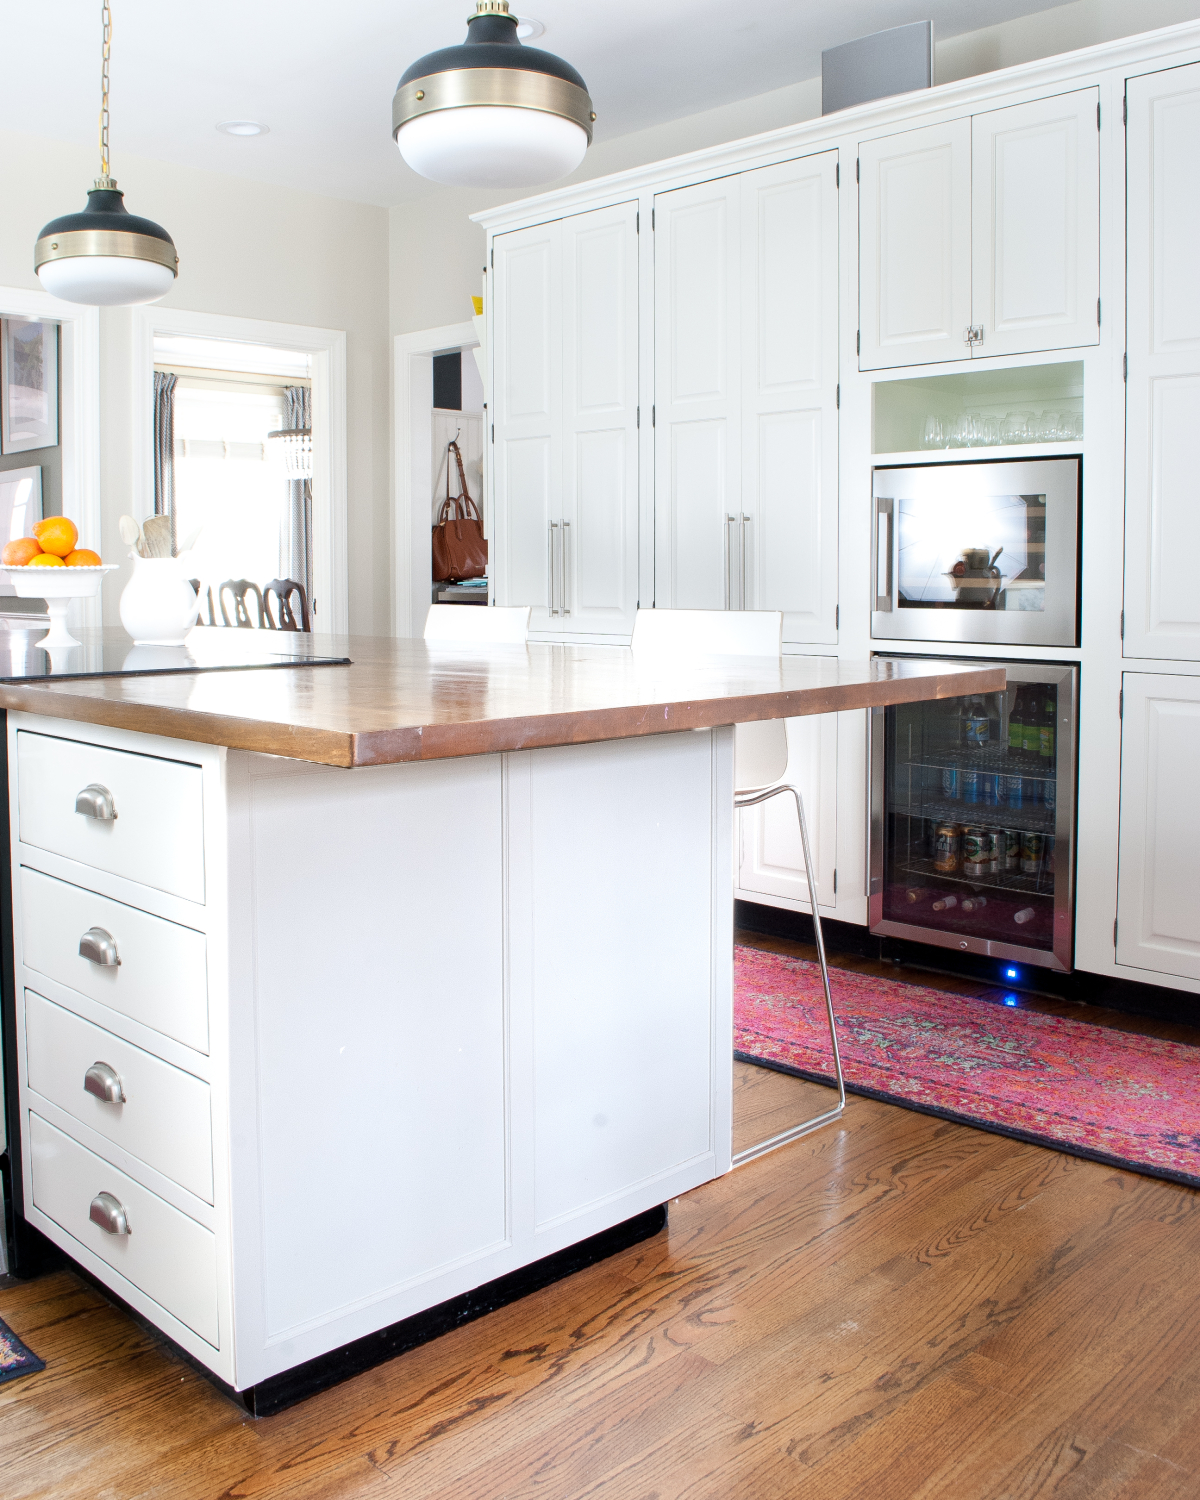 How to Add Detail to a Plain Kitchen Island - The Chronicles ...